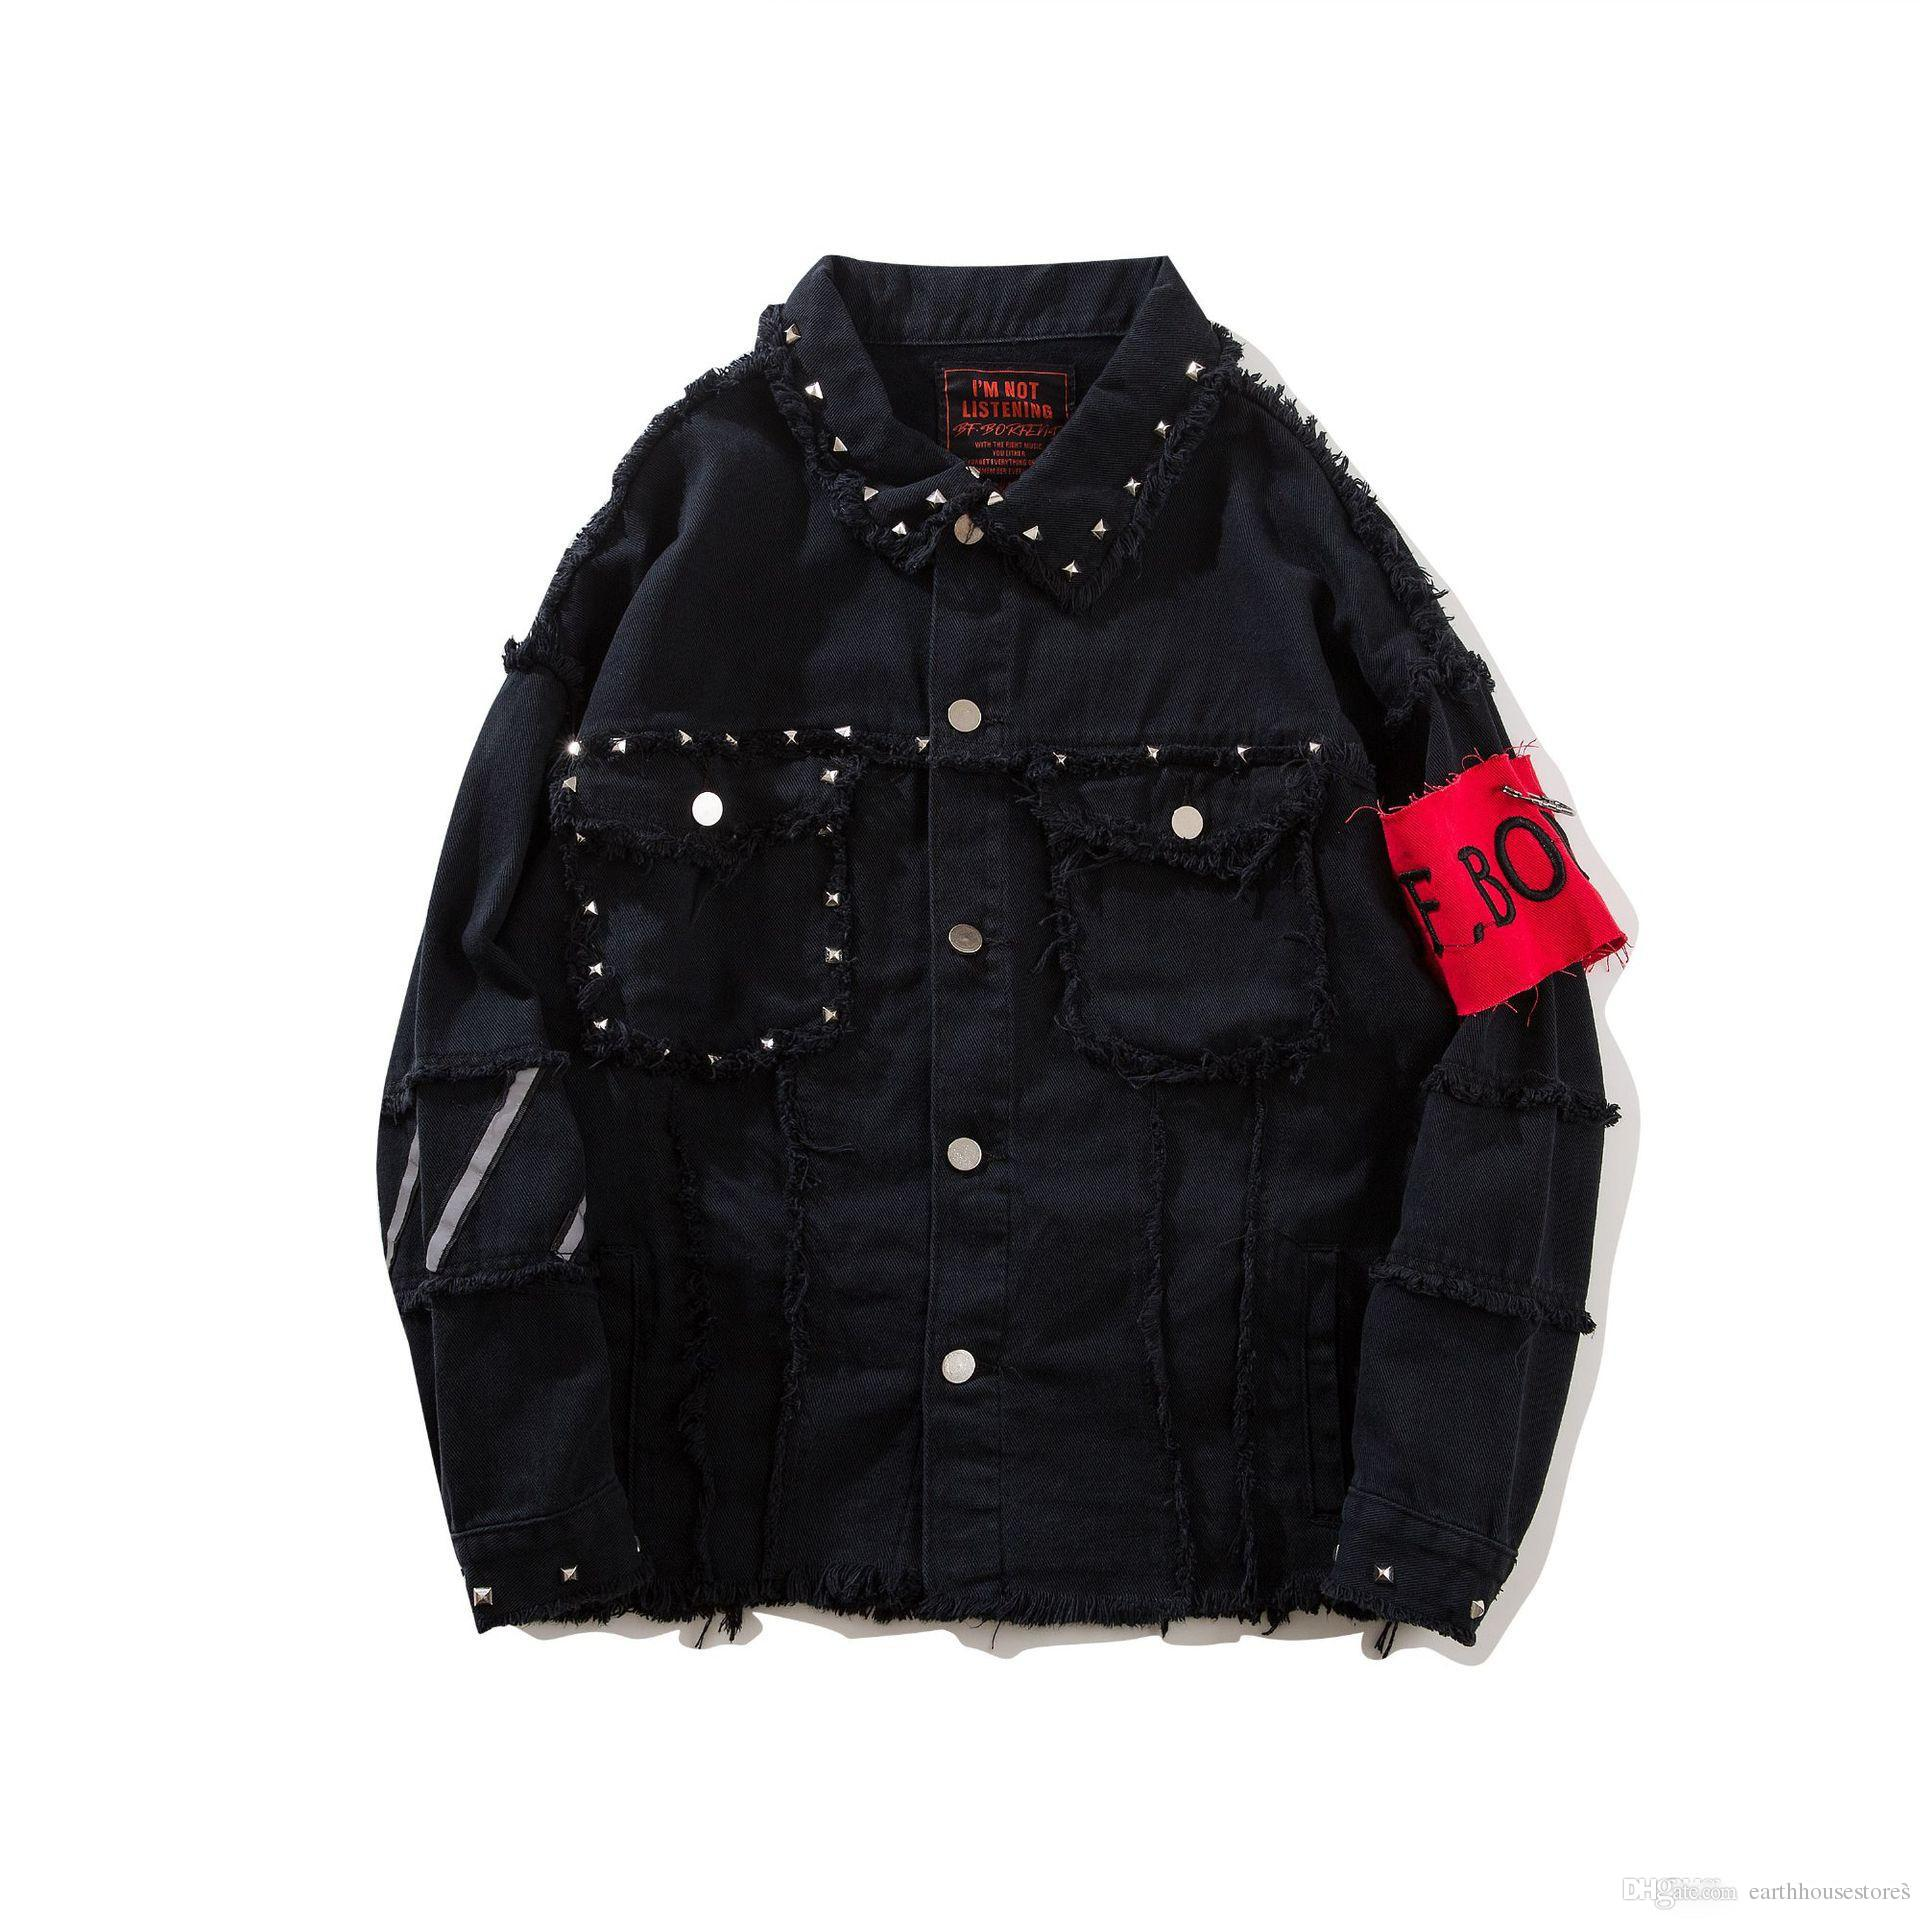 ba0a4b4f9a 2018 Fashion Mens Denim Jackets Rivets Decorated Embroidered Patches Black  Jean Jacket Arm Bandage Homme Streetwear Free Shipping